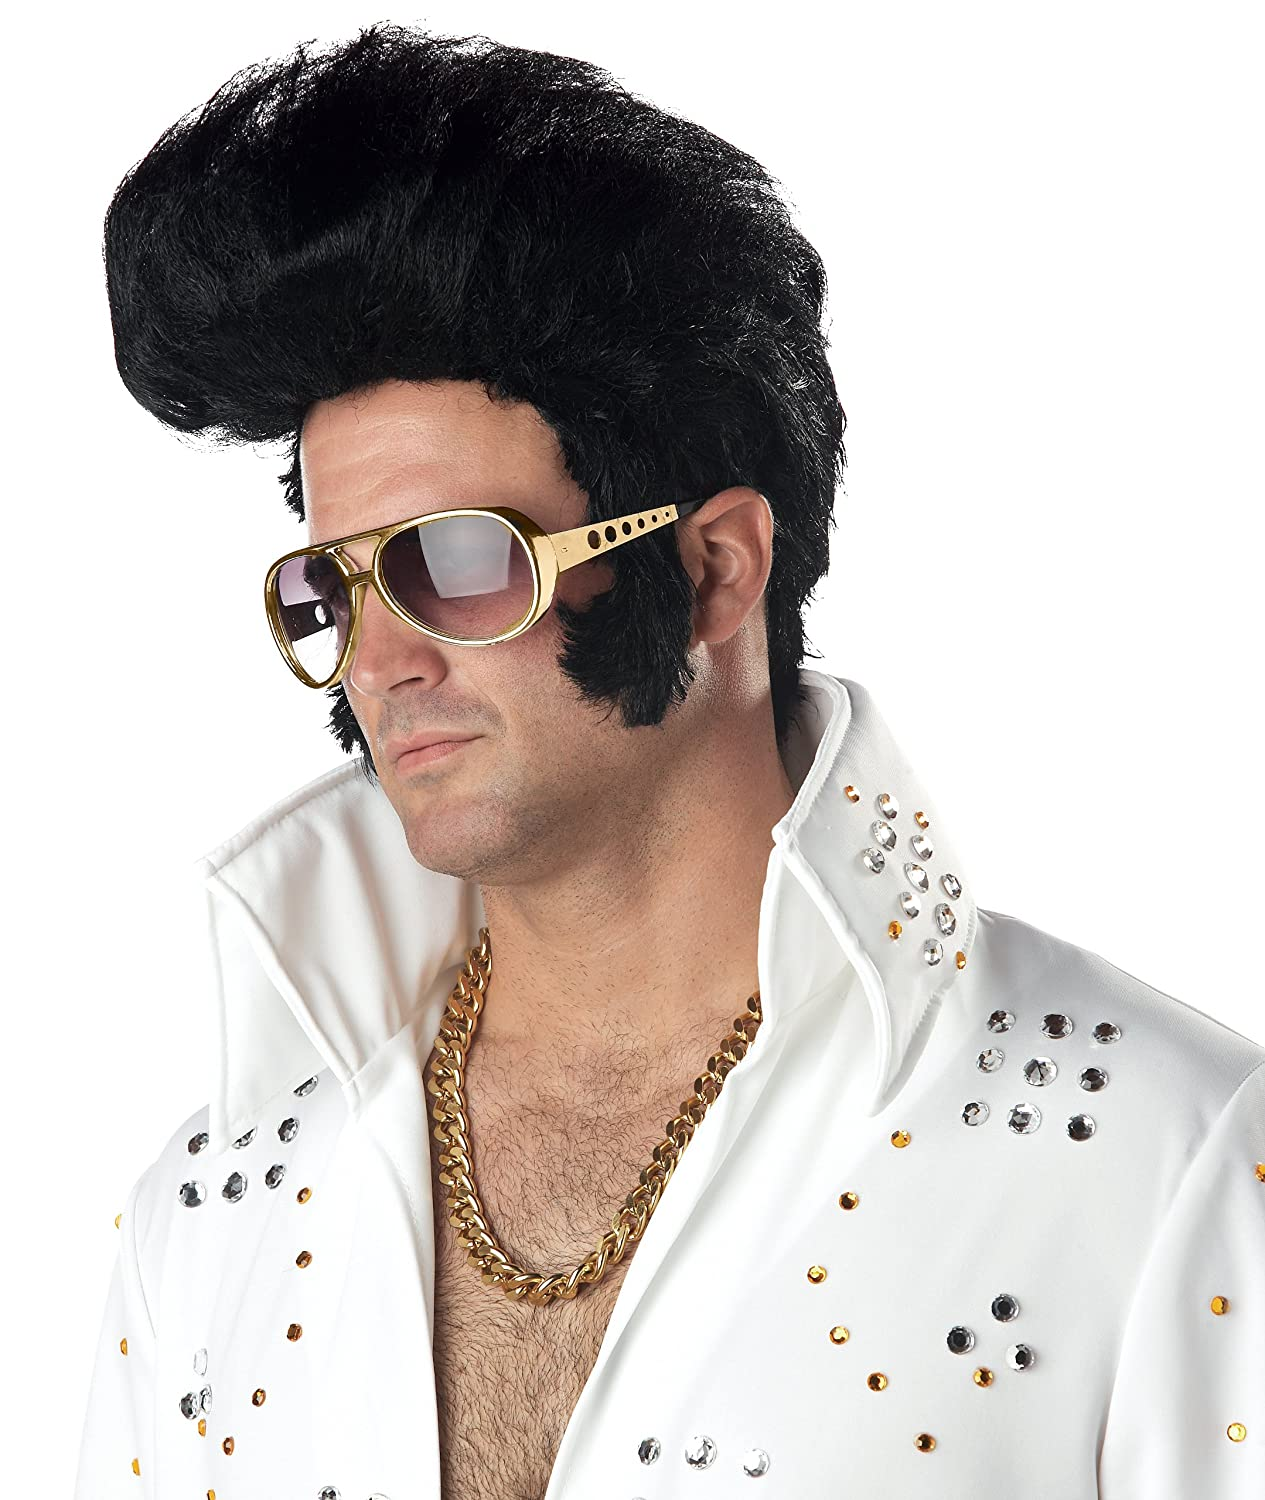 Rock N' Roll King Costume Wig Adult: Black One Size California Costumes CCC-70035